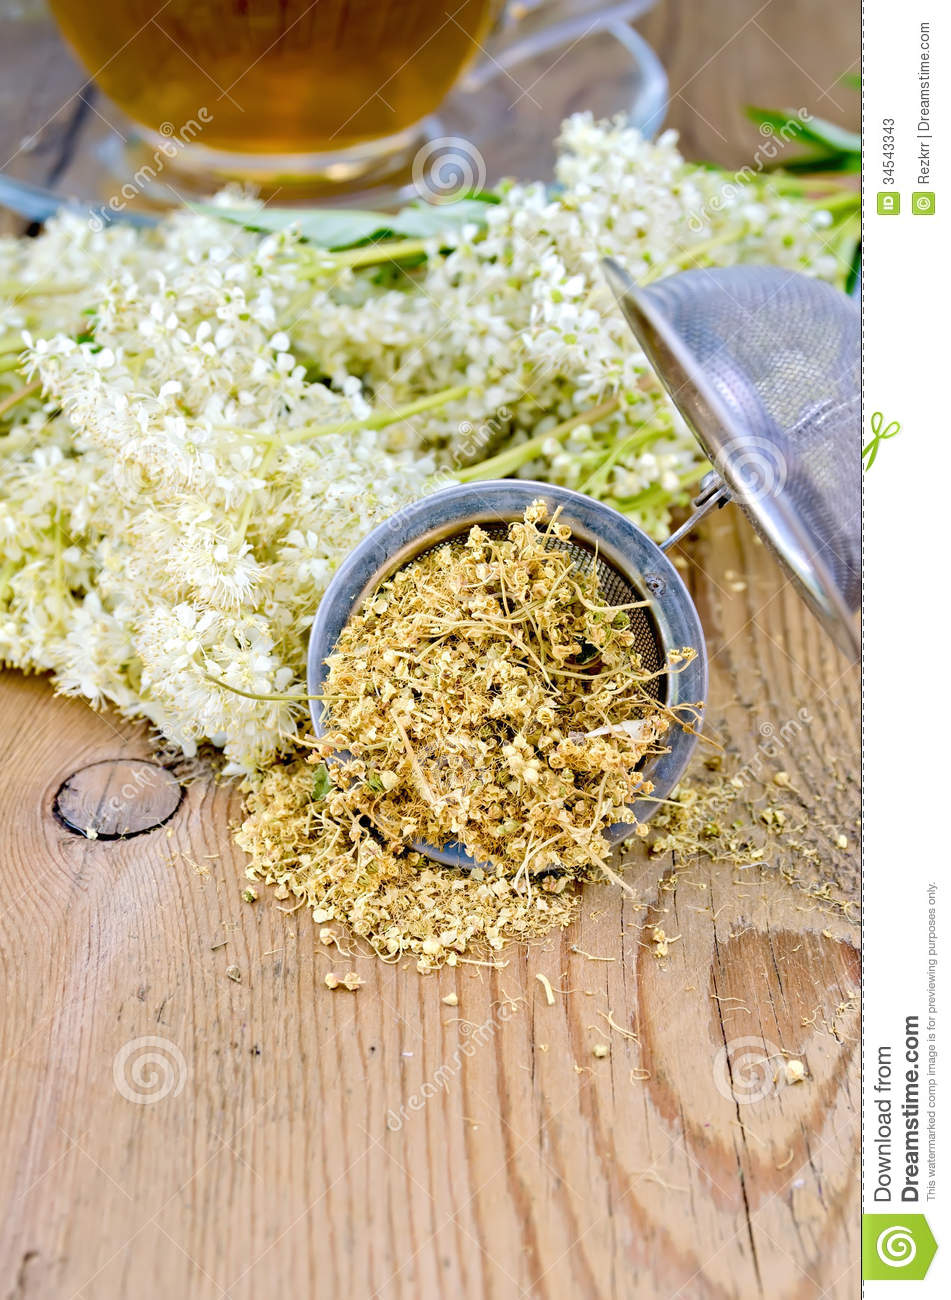 Meadowsweet Flower - Filipendula ulmaria Dried Leaf/Flower ...